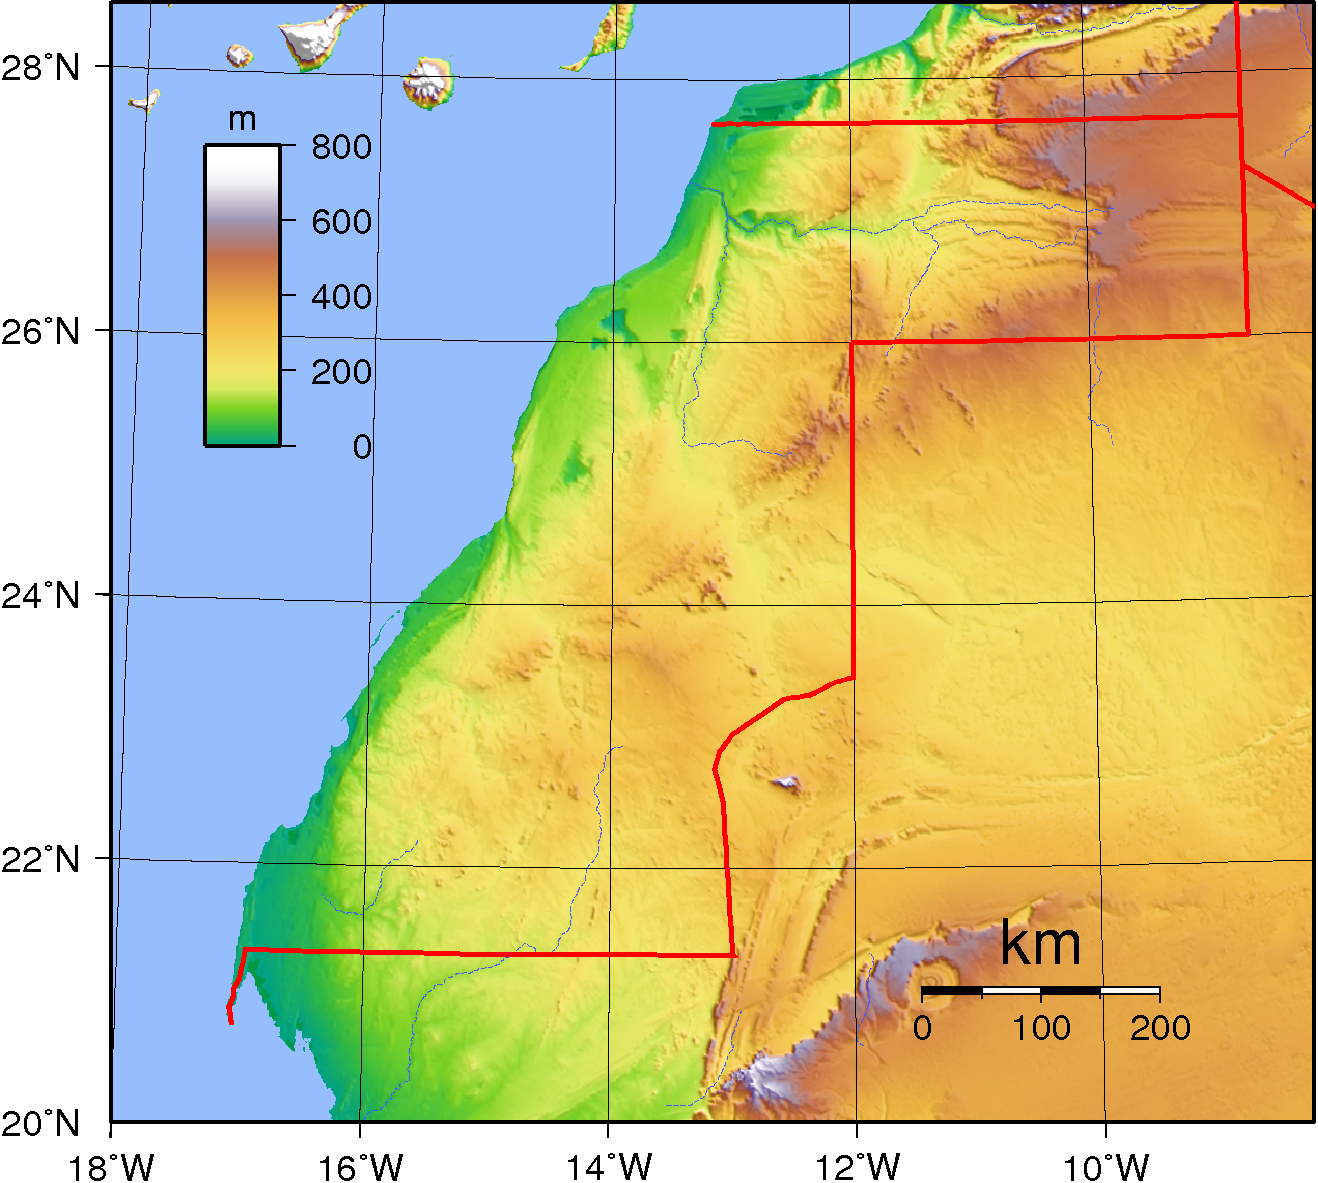 FileWestern Sahara Topographypng Wikimedia Commons - Western sahara map